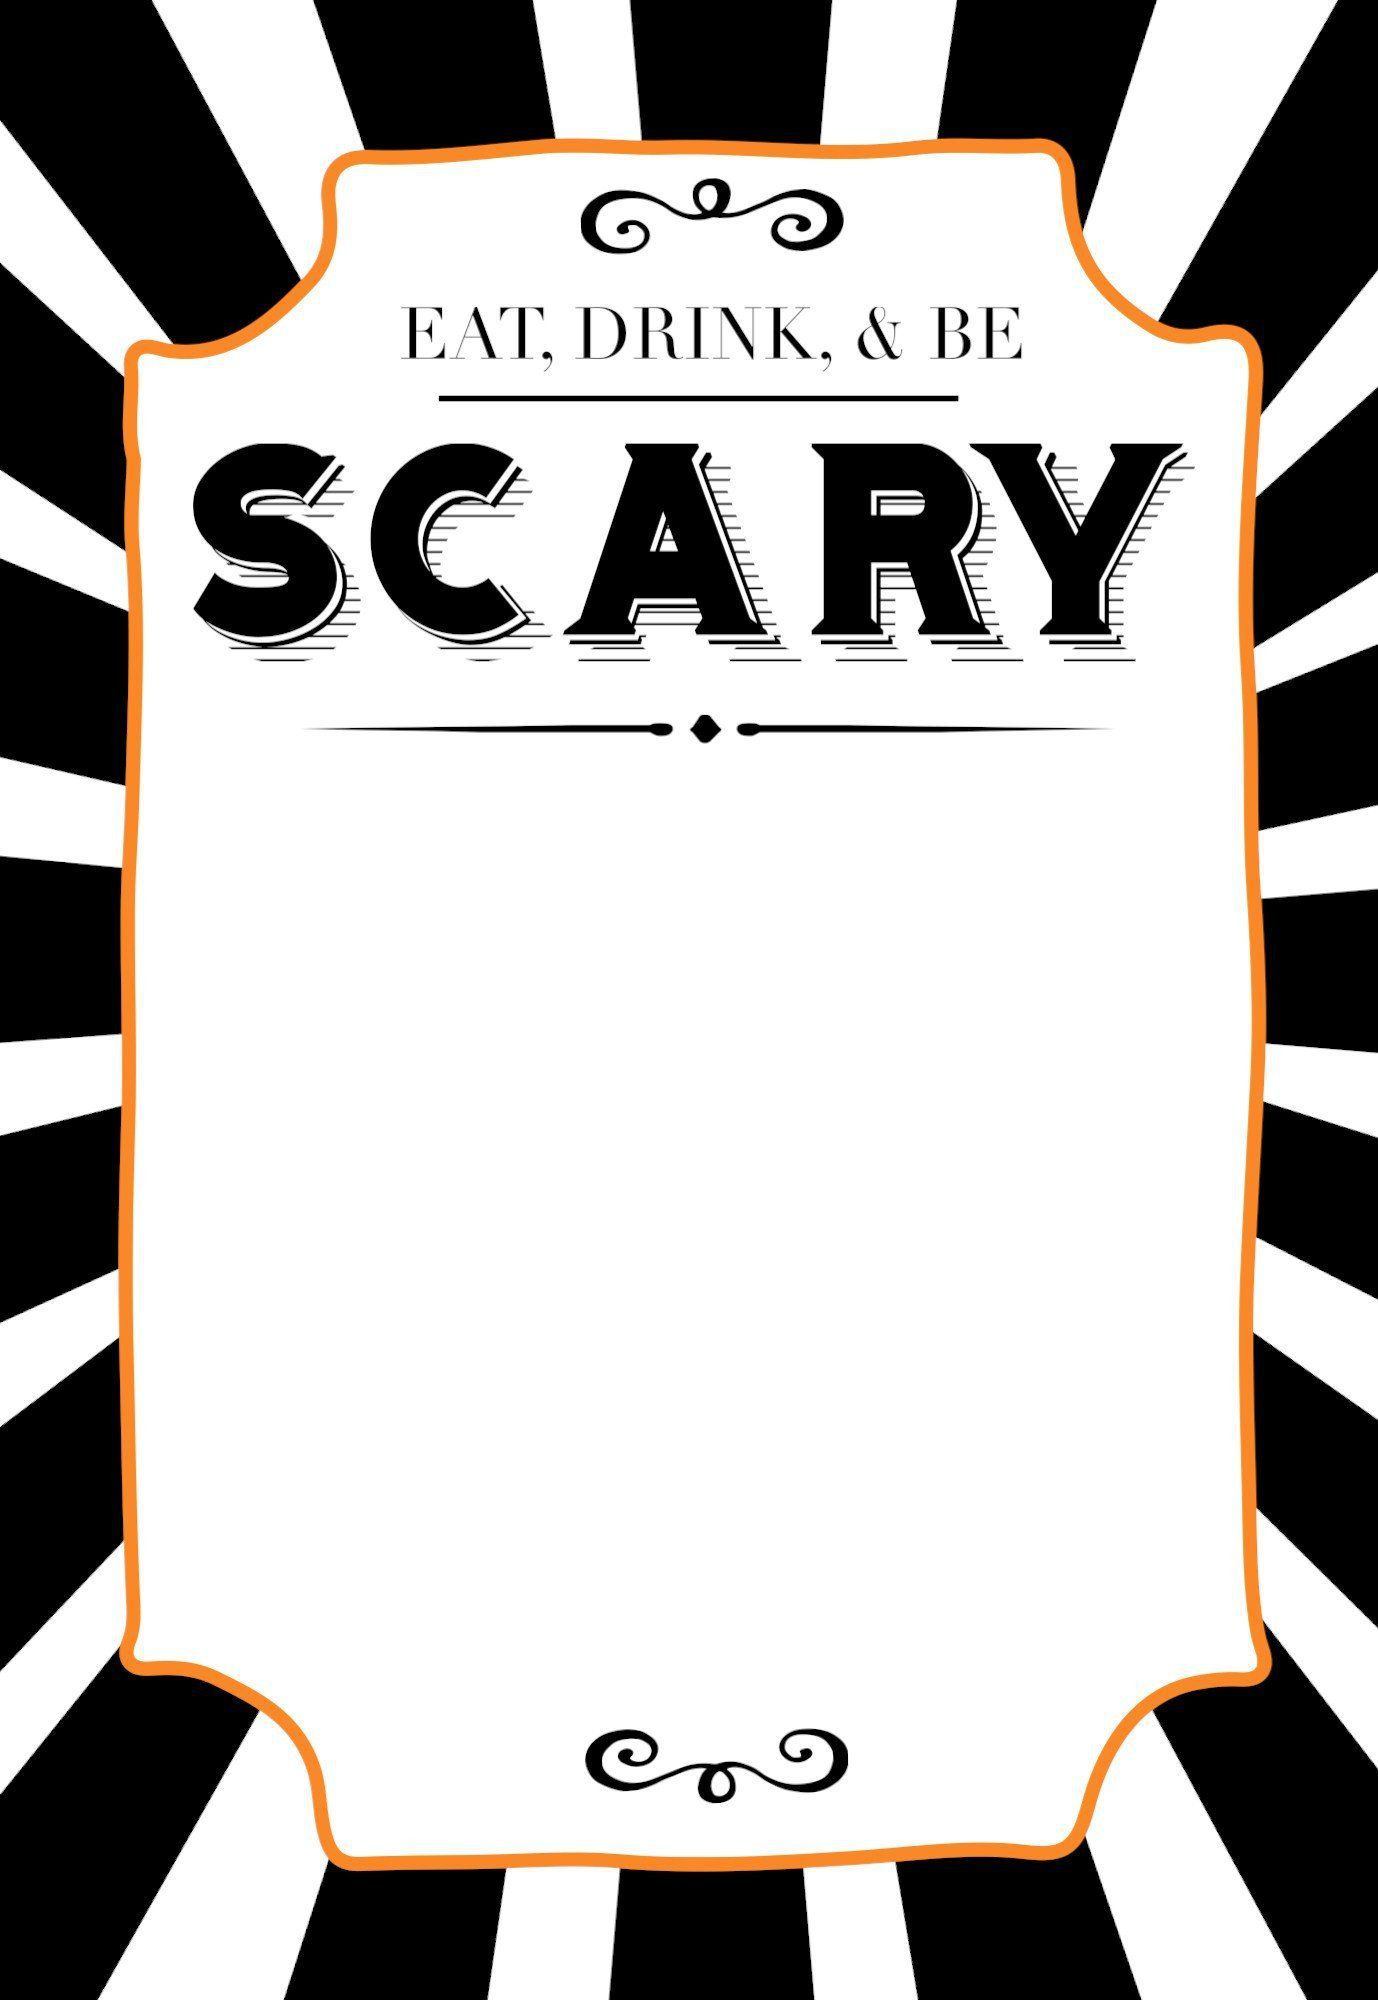 002 Magnificent Free Halloween Invitation Template High Definition  Templates Online Printable Birthday Party WeddingFull